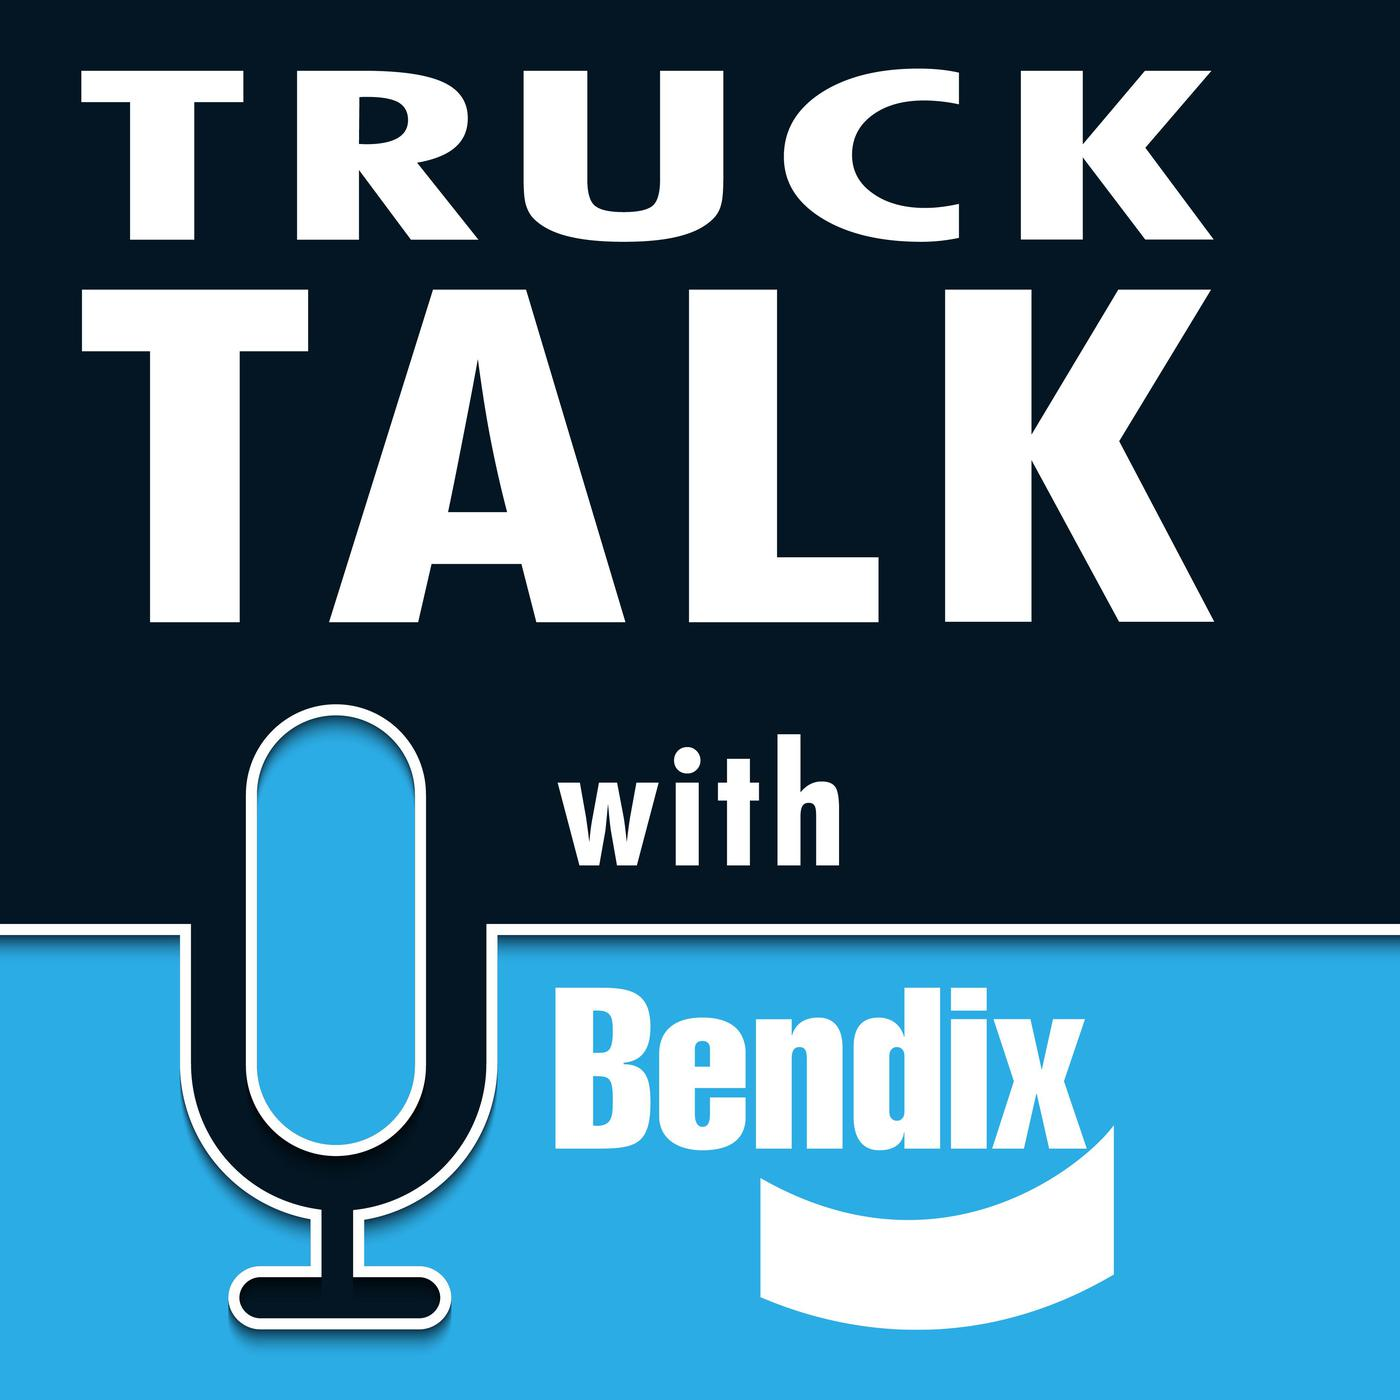 Truck Talk with Bendix: What's New With The Bendix Wingman